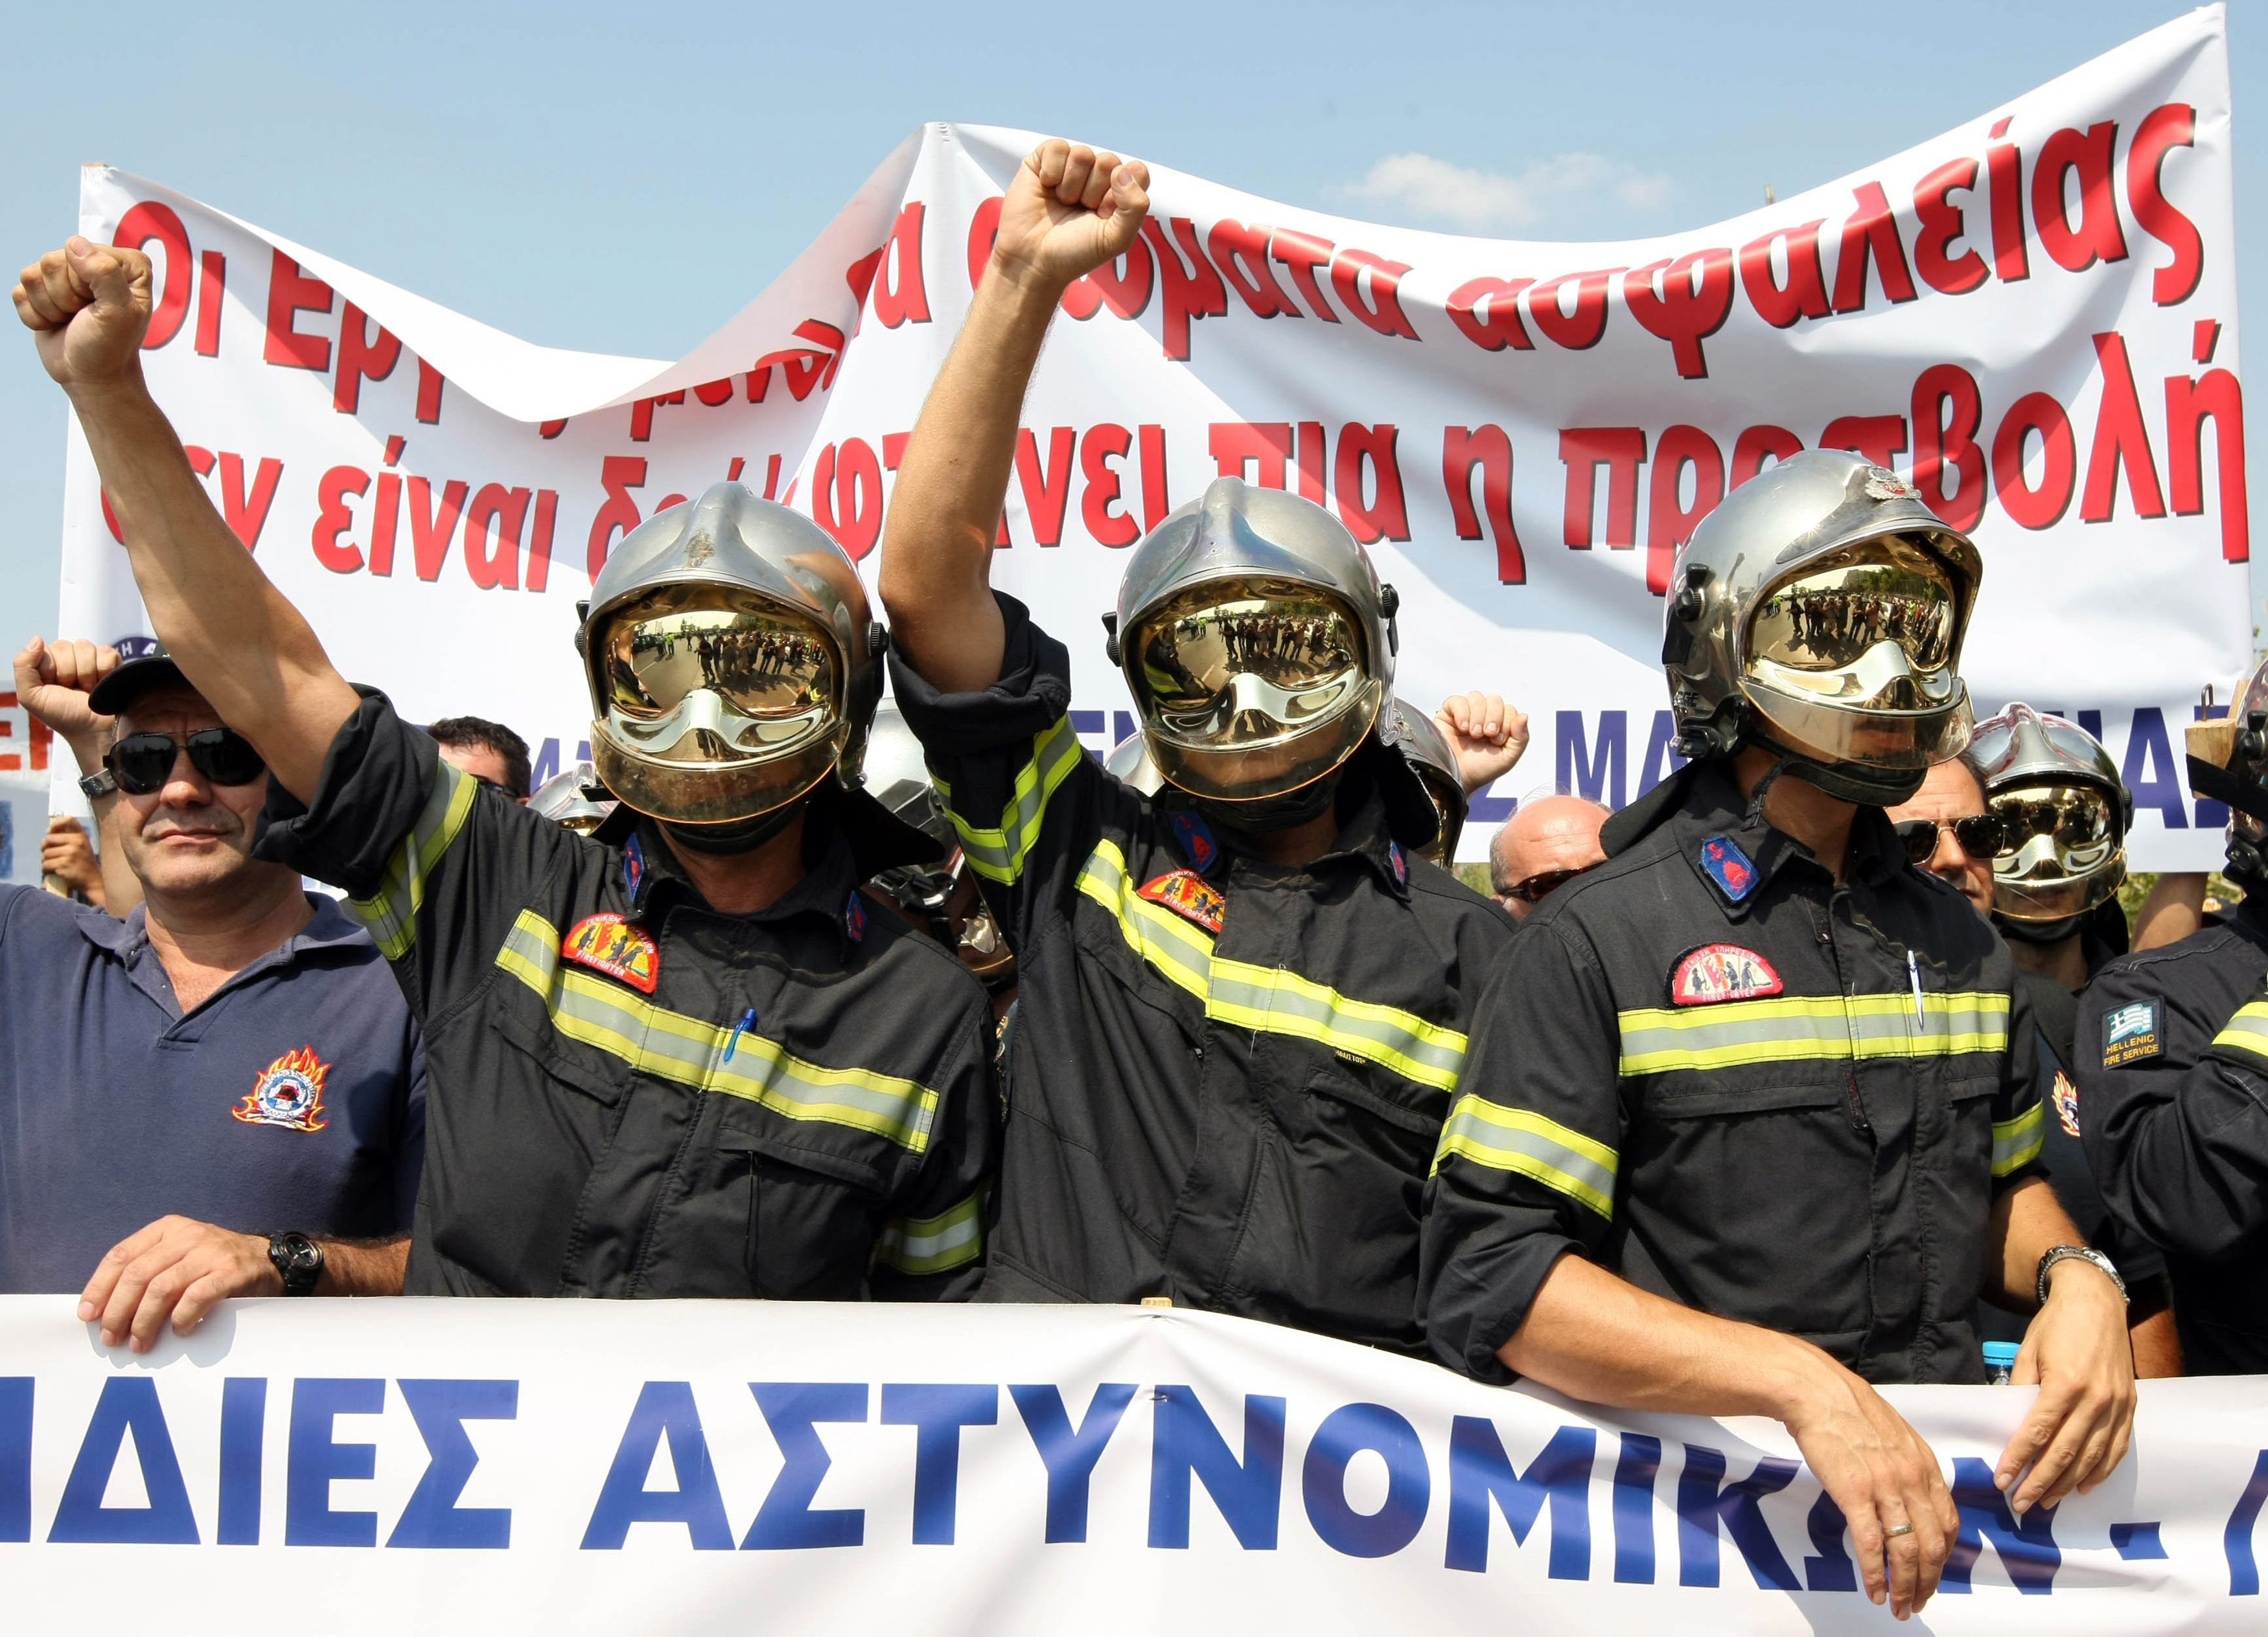 2,500policemen and firemen rallied against the social security bill